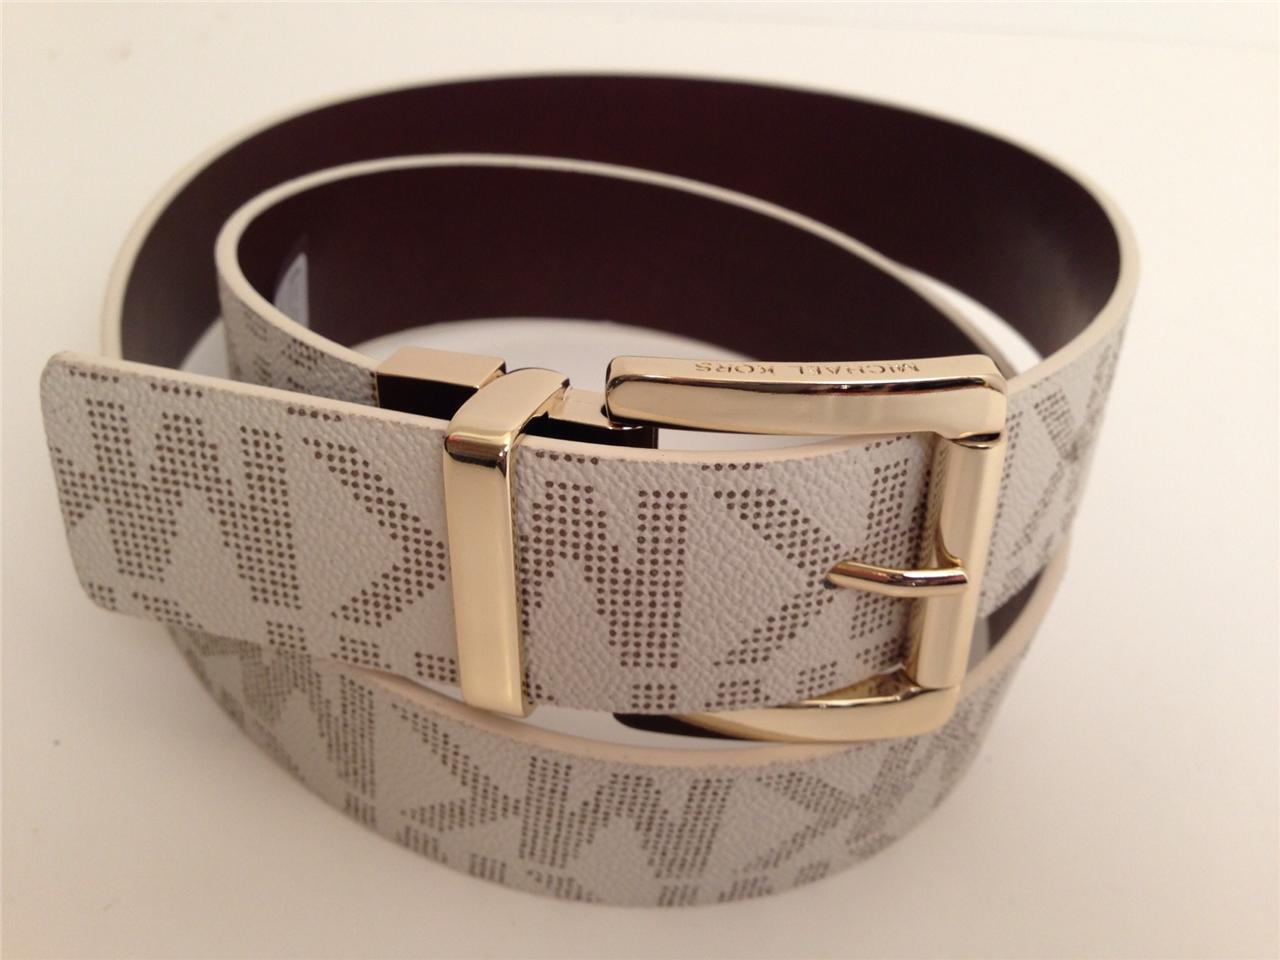 MICHAEL-KORS-Womens-Belts-Reversible-Gold-Buckle-Vanilla-Cho-MK-Signature-New